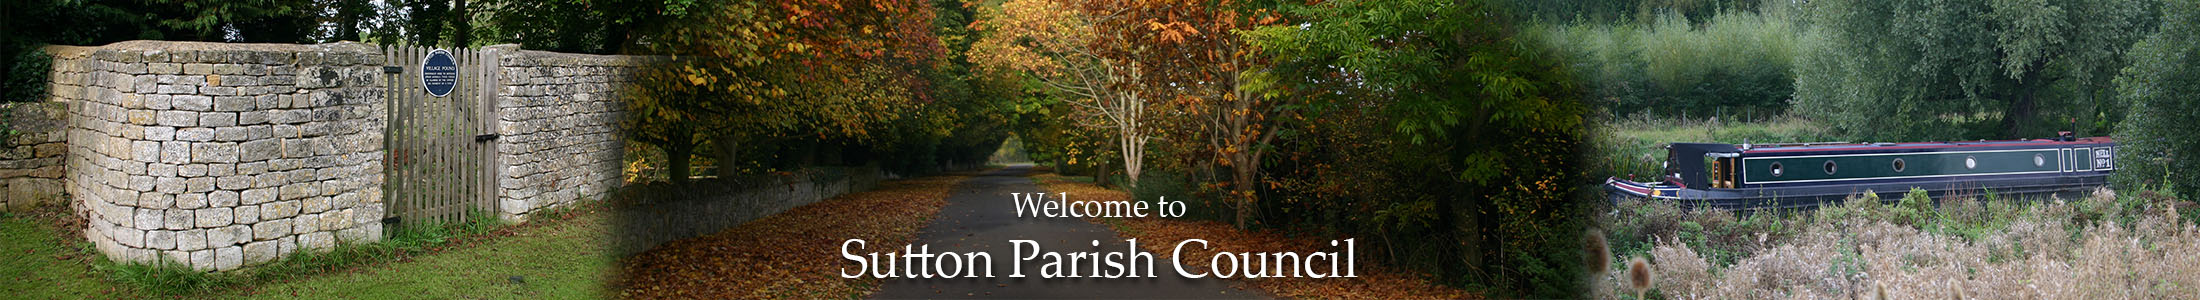 Header Image for Sutton Parish Council - Peterborough